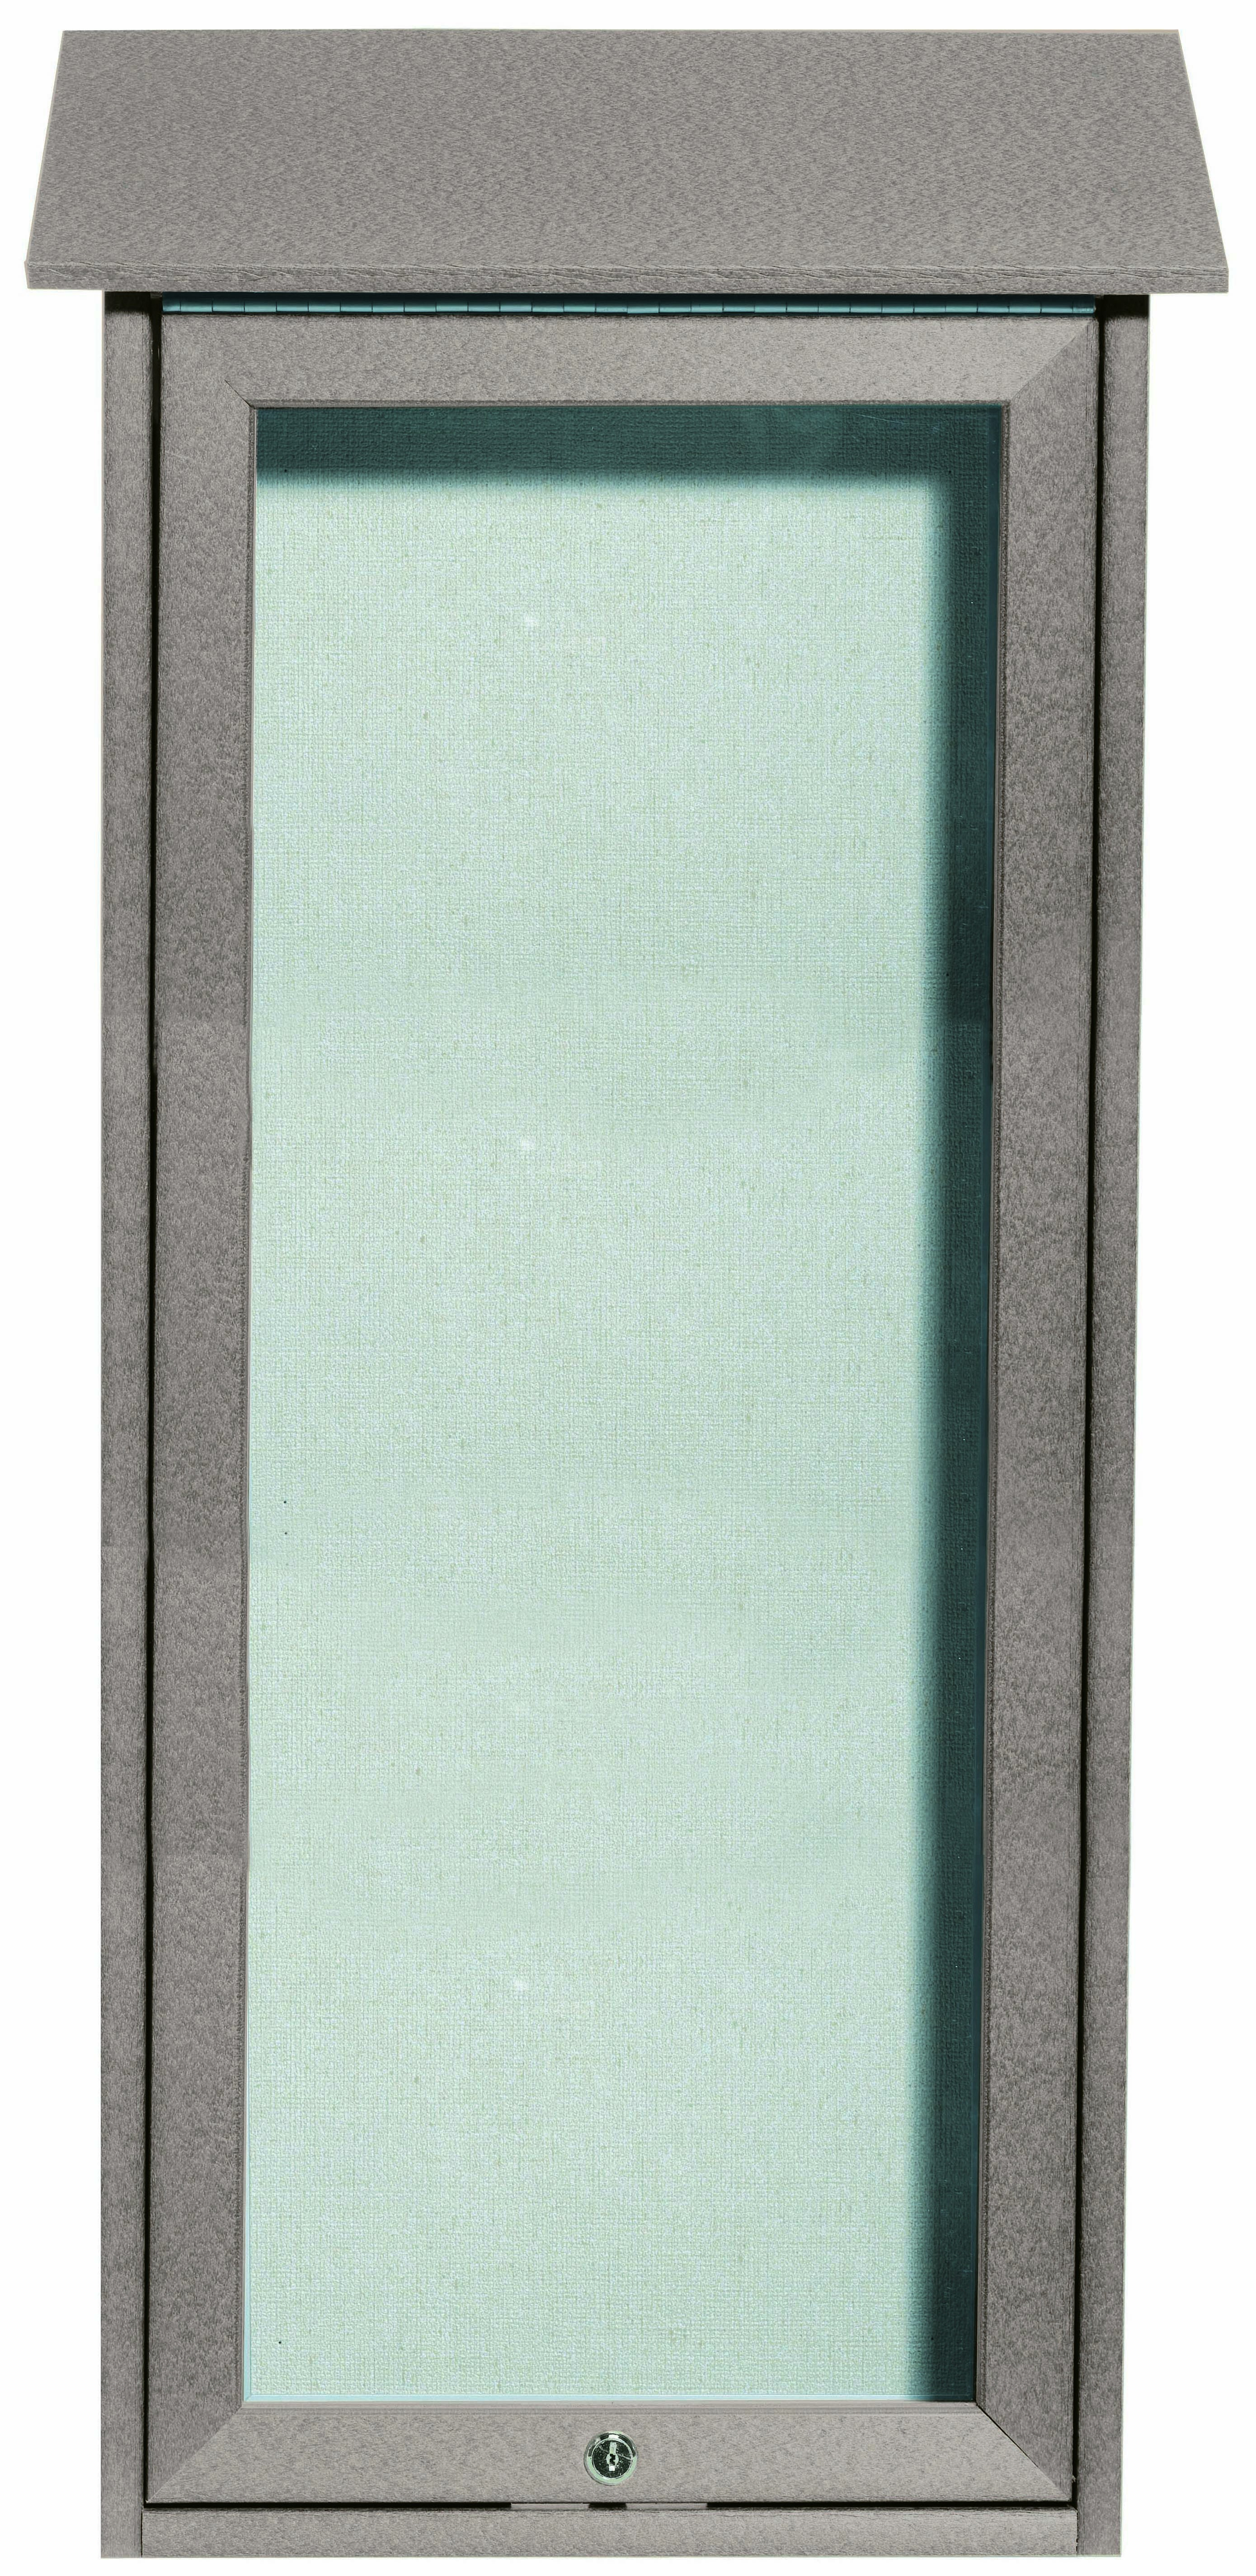 Light Grey Slimline Series Top Hinged Single Door Plastic Lumber Message Center with Vinyl Posting Surface-34